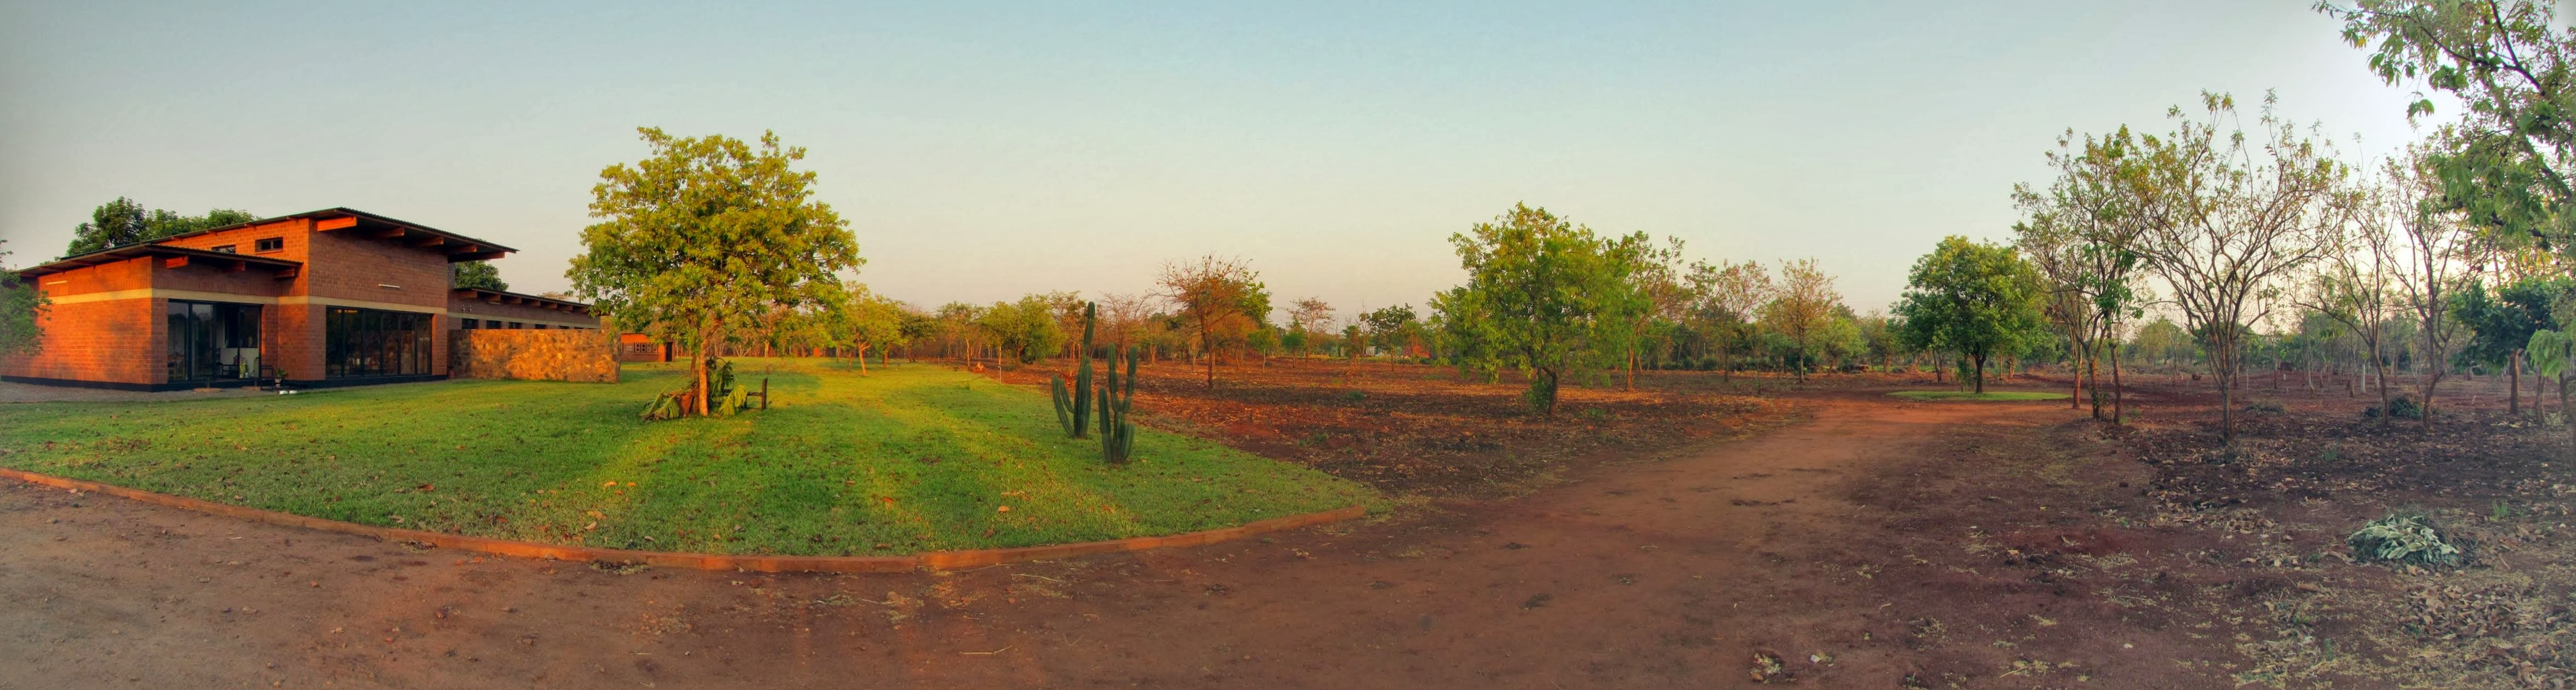 Moyofarm, a place in the warm heart of Africa